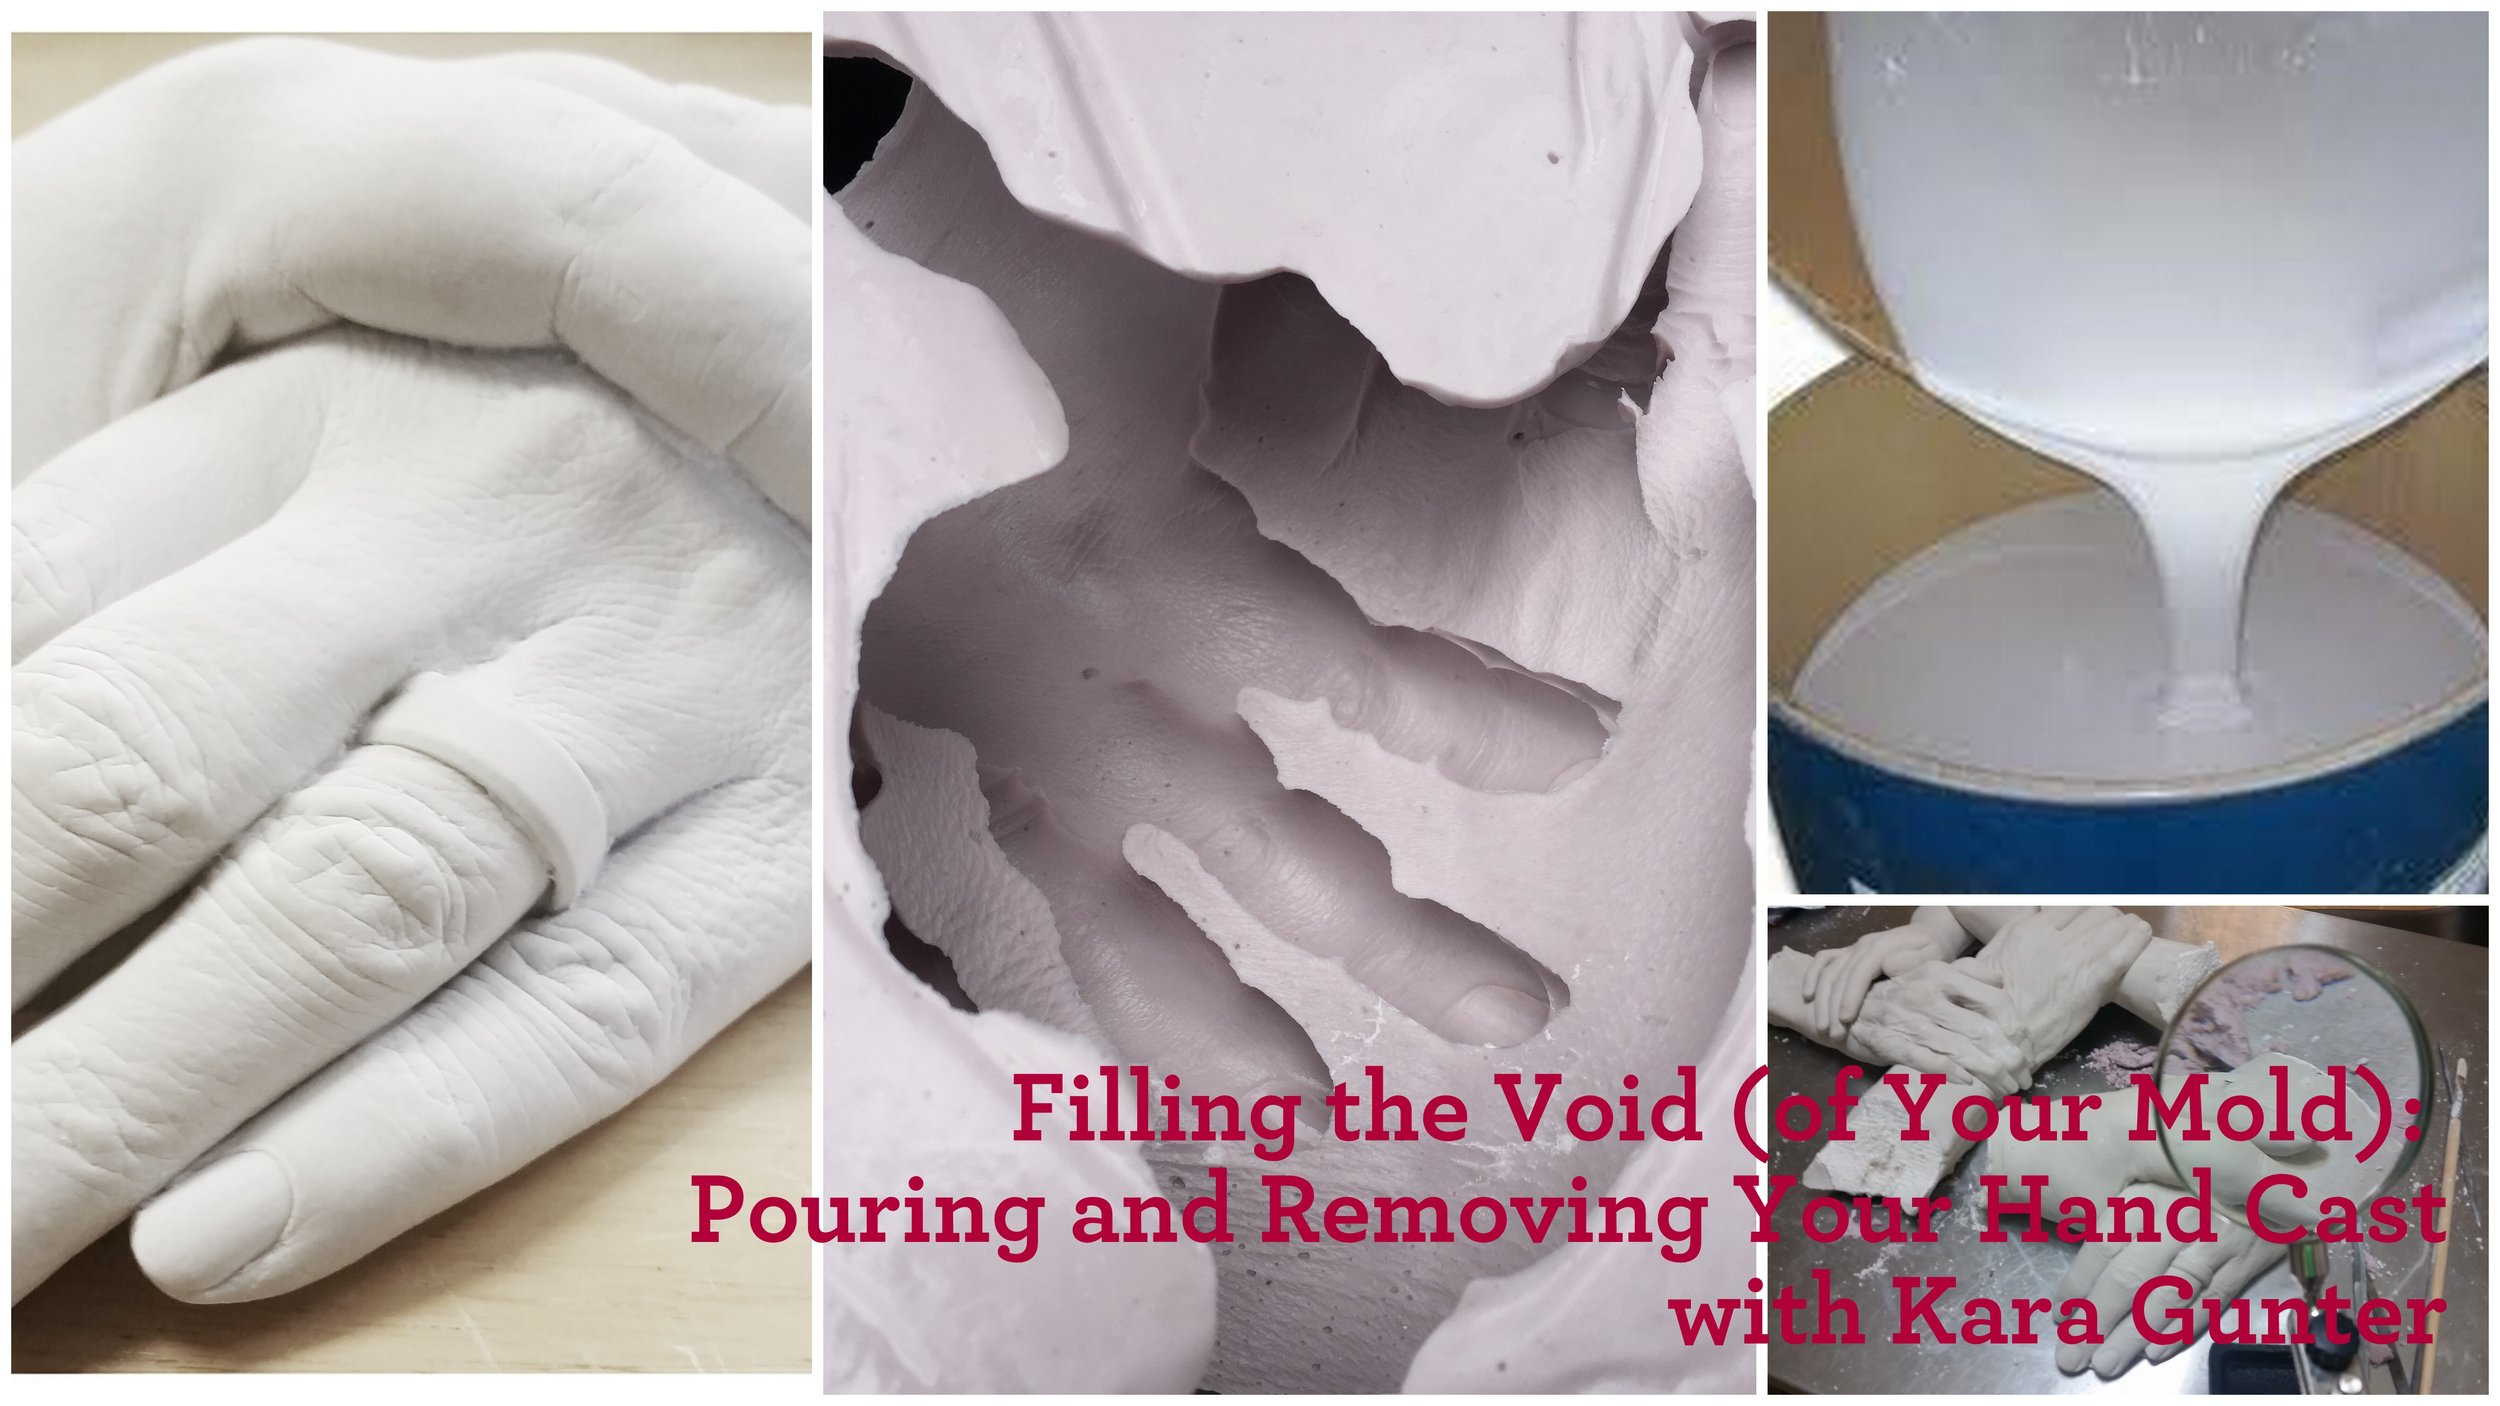 Class Two - Filling the Void (of Your Mold): Pouring and Removing Your Hand CastSkillshare Link:https://skl.sh/2IGFSCr This class is the second in a series of three classes, which will walk you through the process of pouring the mold you made in Making the Mold: The First Step in Making Your Own Hand Cast,and removing your casting from the mold.This series of classes is designed for the absolute beginner, however an adventurous spirit is a must! This thorough series of classes will walk you through making a mold, pouring the mold, and refining the casting. If you are interested in beginning your own hand casting business, you're an artist looking for an accessible introduction to body or life casting, or you want to take your own hand cast for your family or friends to the next level, this is a great place to start.